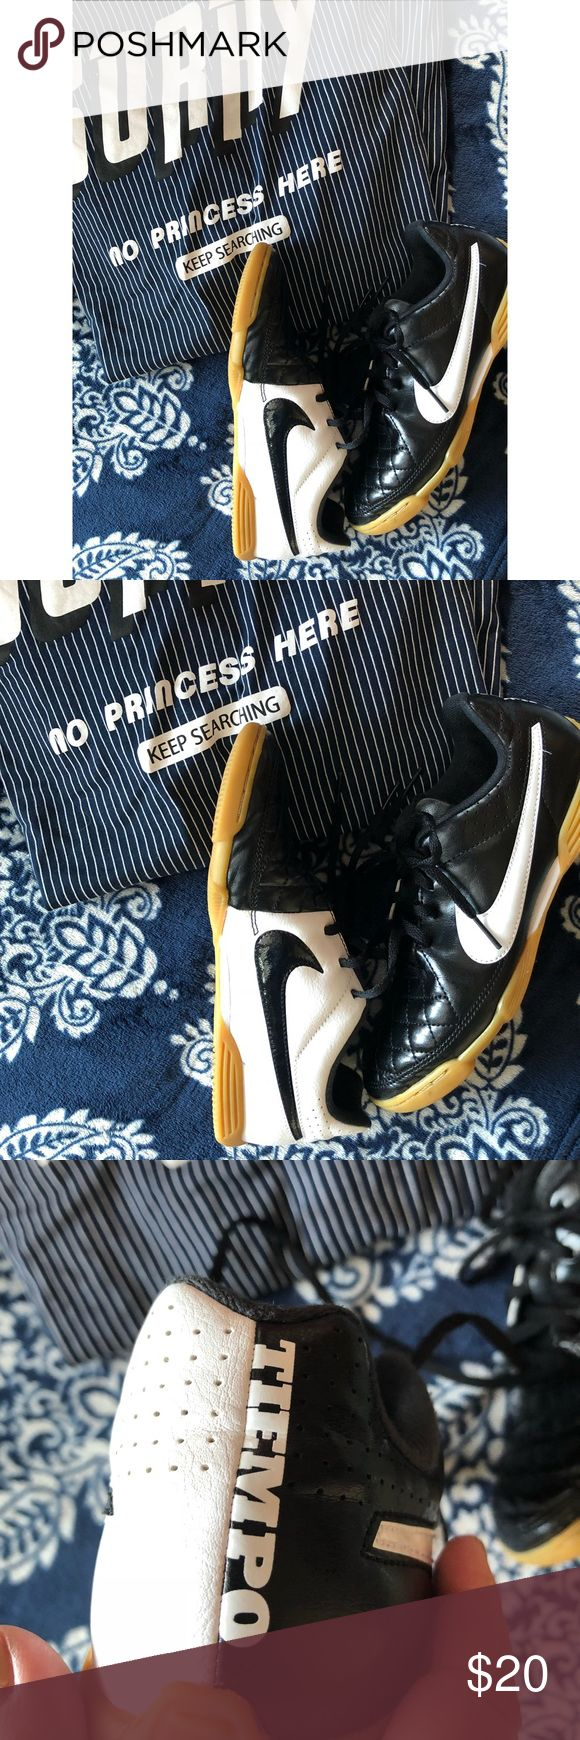 Nike Tiempo Indoor Soccer Shoes Cleat Free! Black and white quilted top soccer shoes with neutral rubber. I bought these brand new and they have been worn 5 times and never to play soccer! 😊 Youth 5.5 equivalent to a W 6.5 EUC Nike Shoes Sneakers